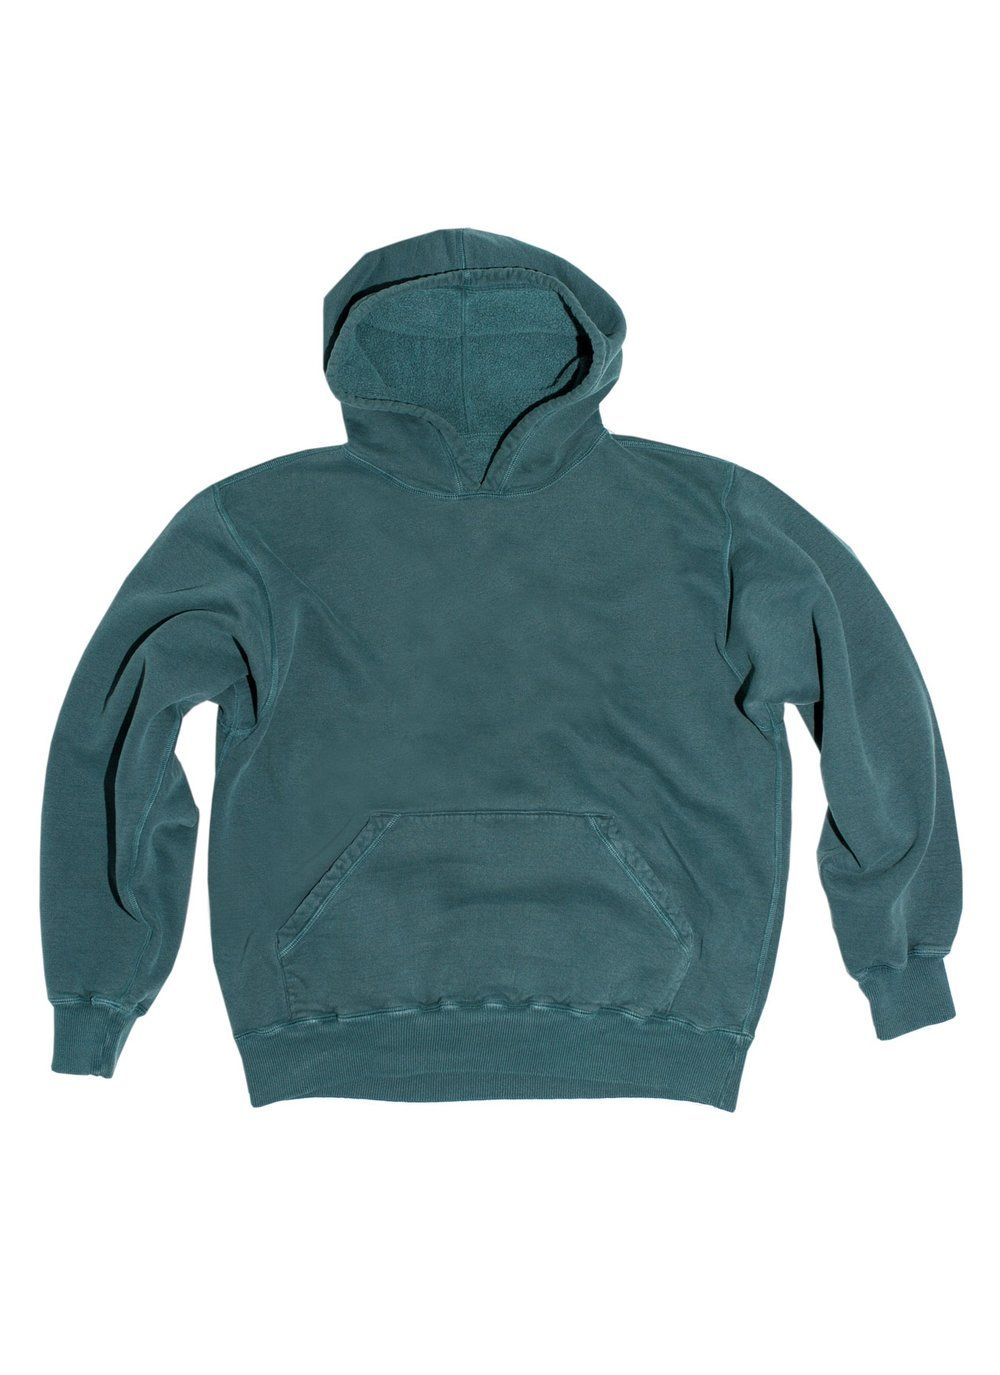 af1f0dfa REVERSIBLE WARM UP HOODIE - Washed Green — COLE BUXTON | Style ...